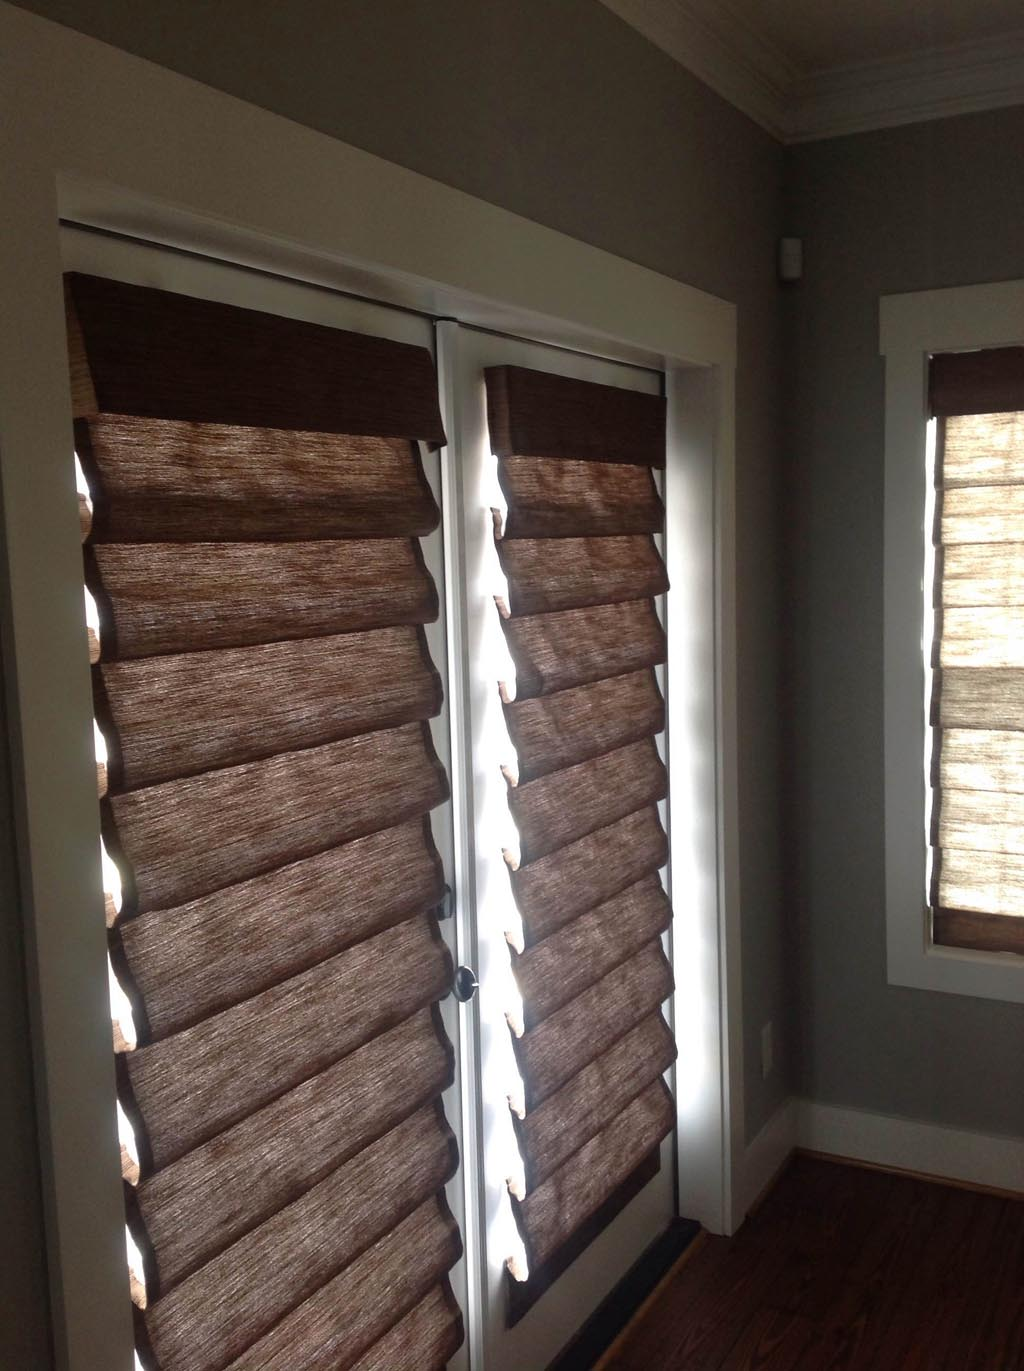 Privacy Liner for Bamboo Roman Shades